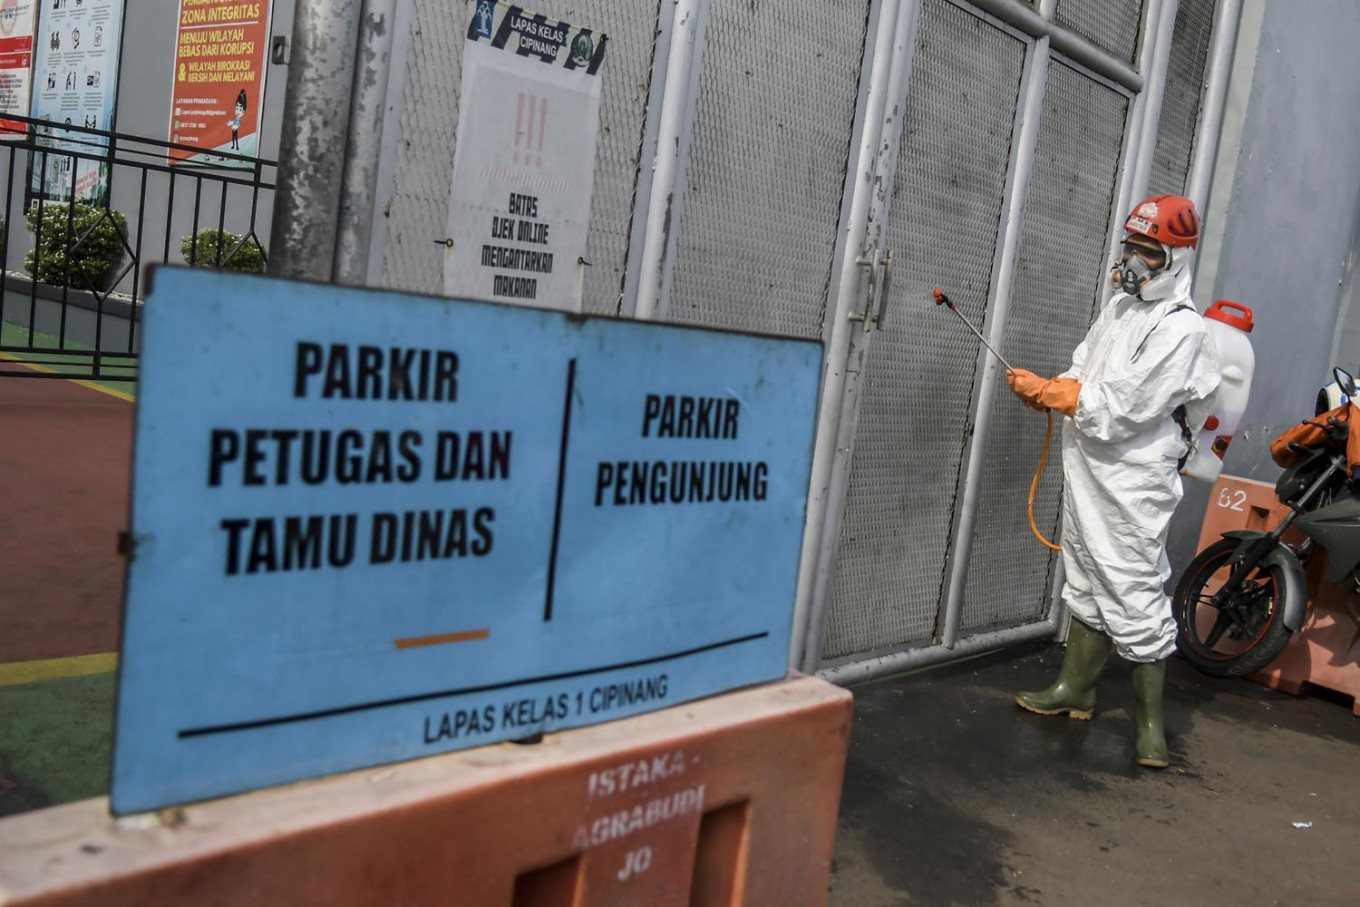 Korea, Red Cross help curb spread of COVID-19 in Indonesian prisons